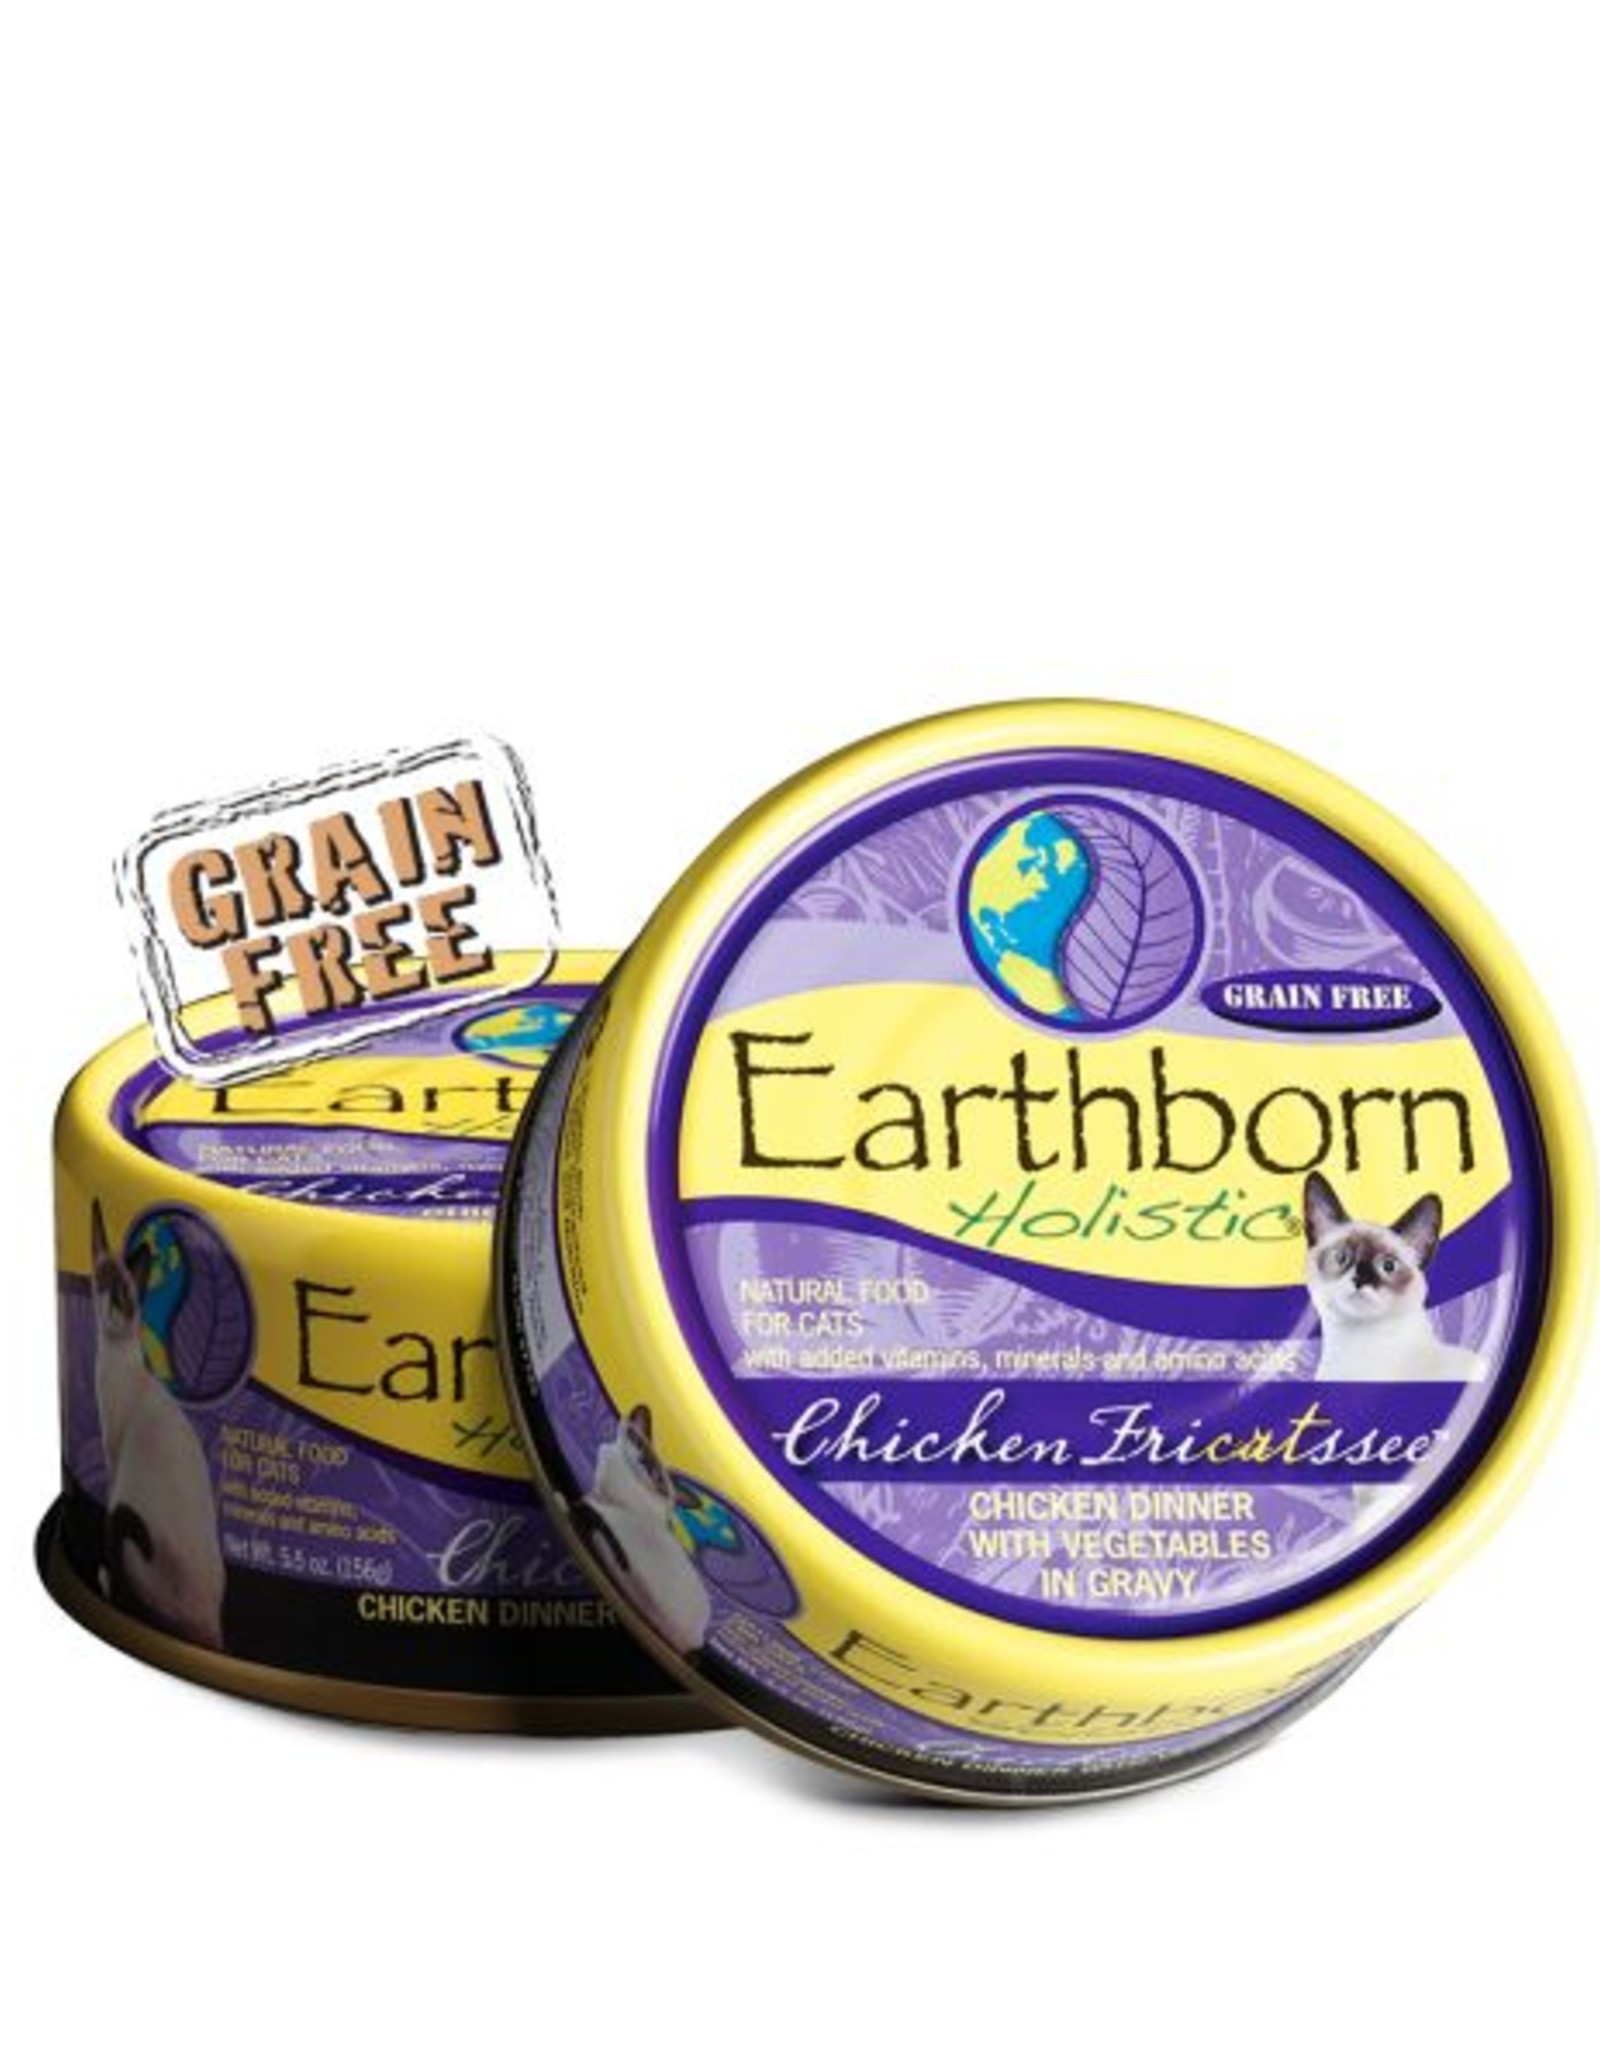 Earthborn Chicken Fricatssee Grain-Free Natural Adult Canned Cat Food, 5.5 oz.